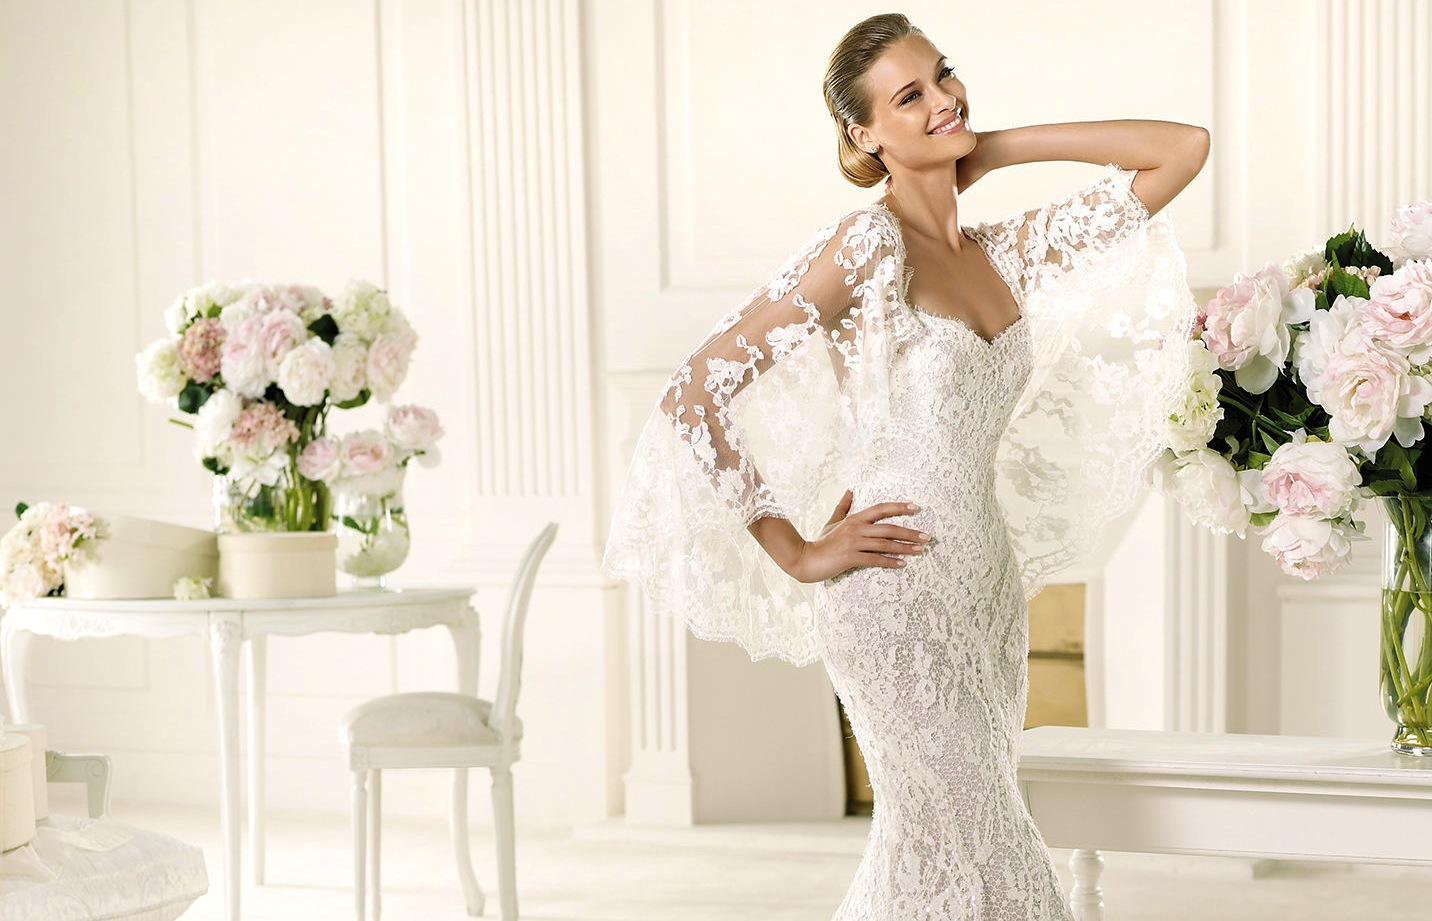 lace+wedding+dresses+cape+town wedding dress with cape